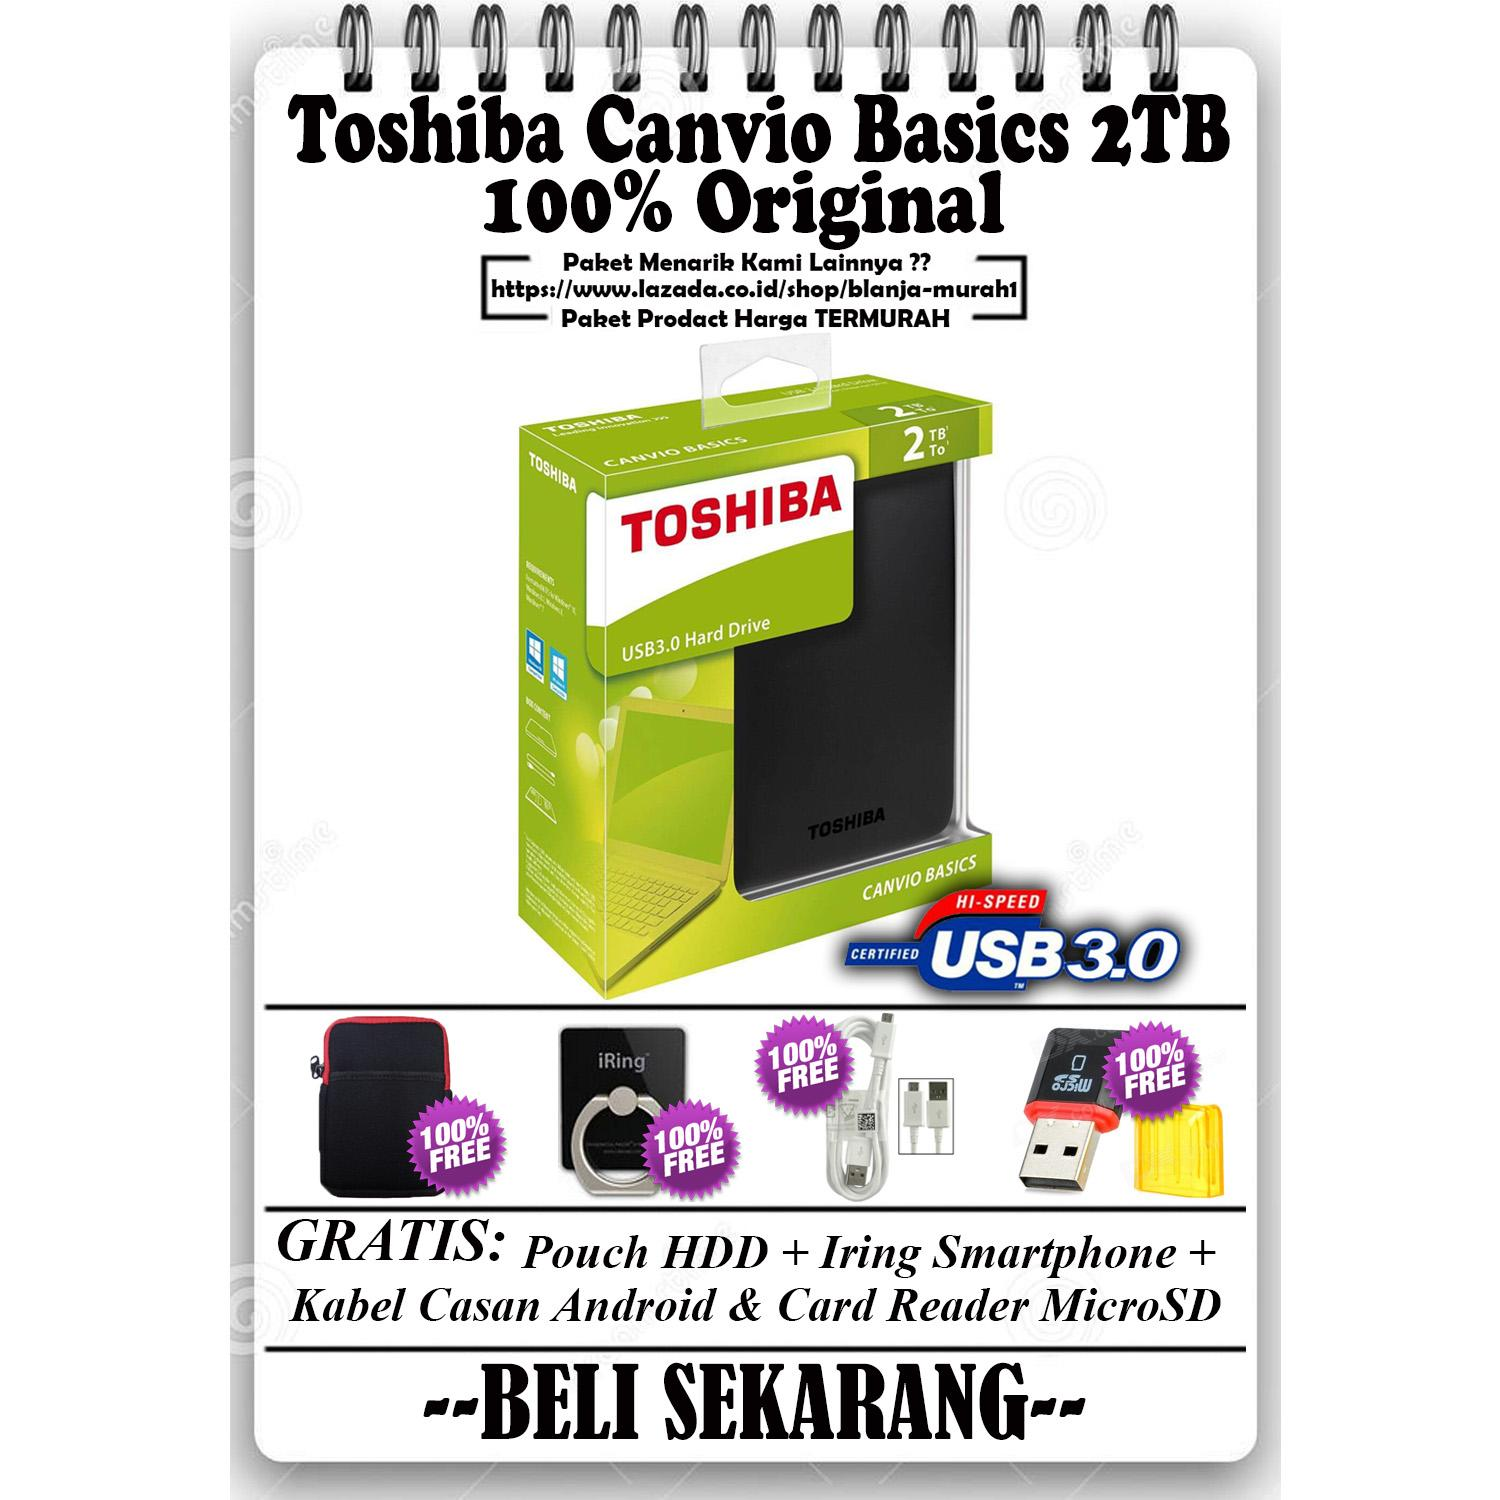 Toshiba Canvio Basics 2TB - HDD / HD / Hardisk Eksternal - Black GRATIS Pouch Harddisk Ext + Iring Smartphone + Kabel Casan Android & Card Reader MicroSD